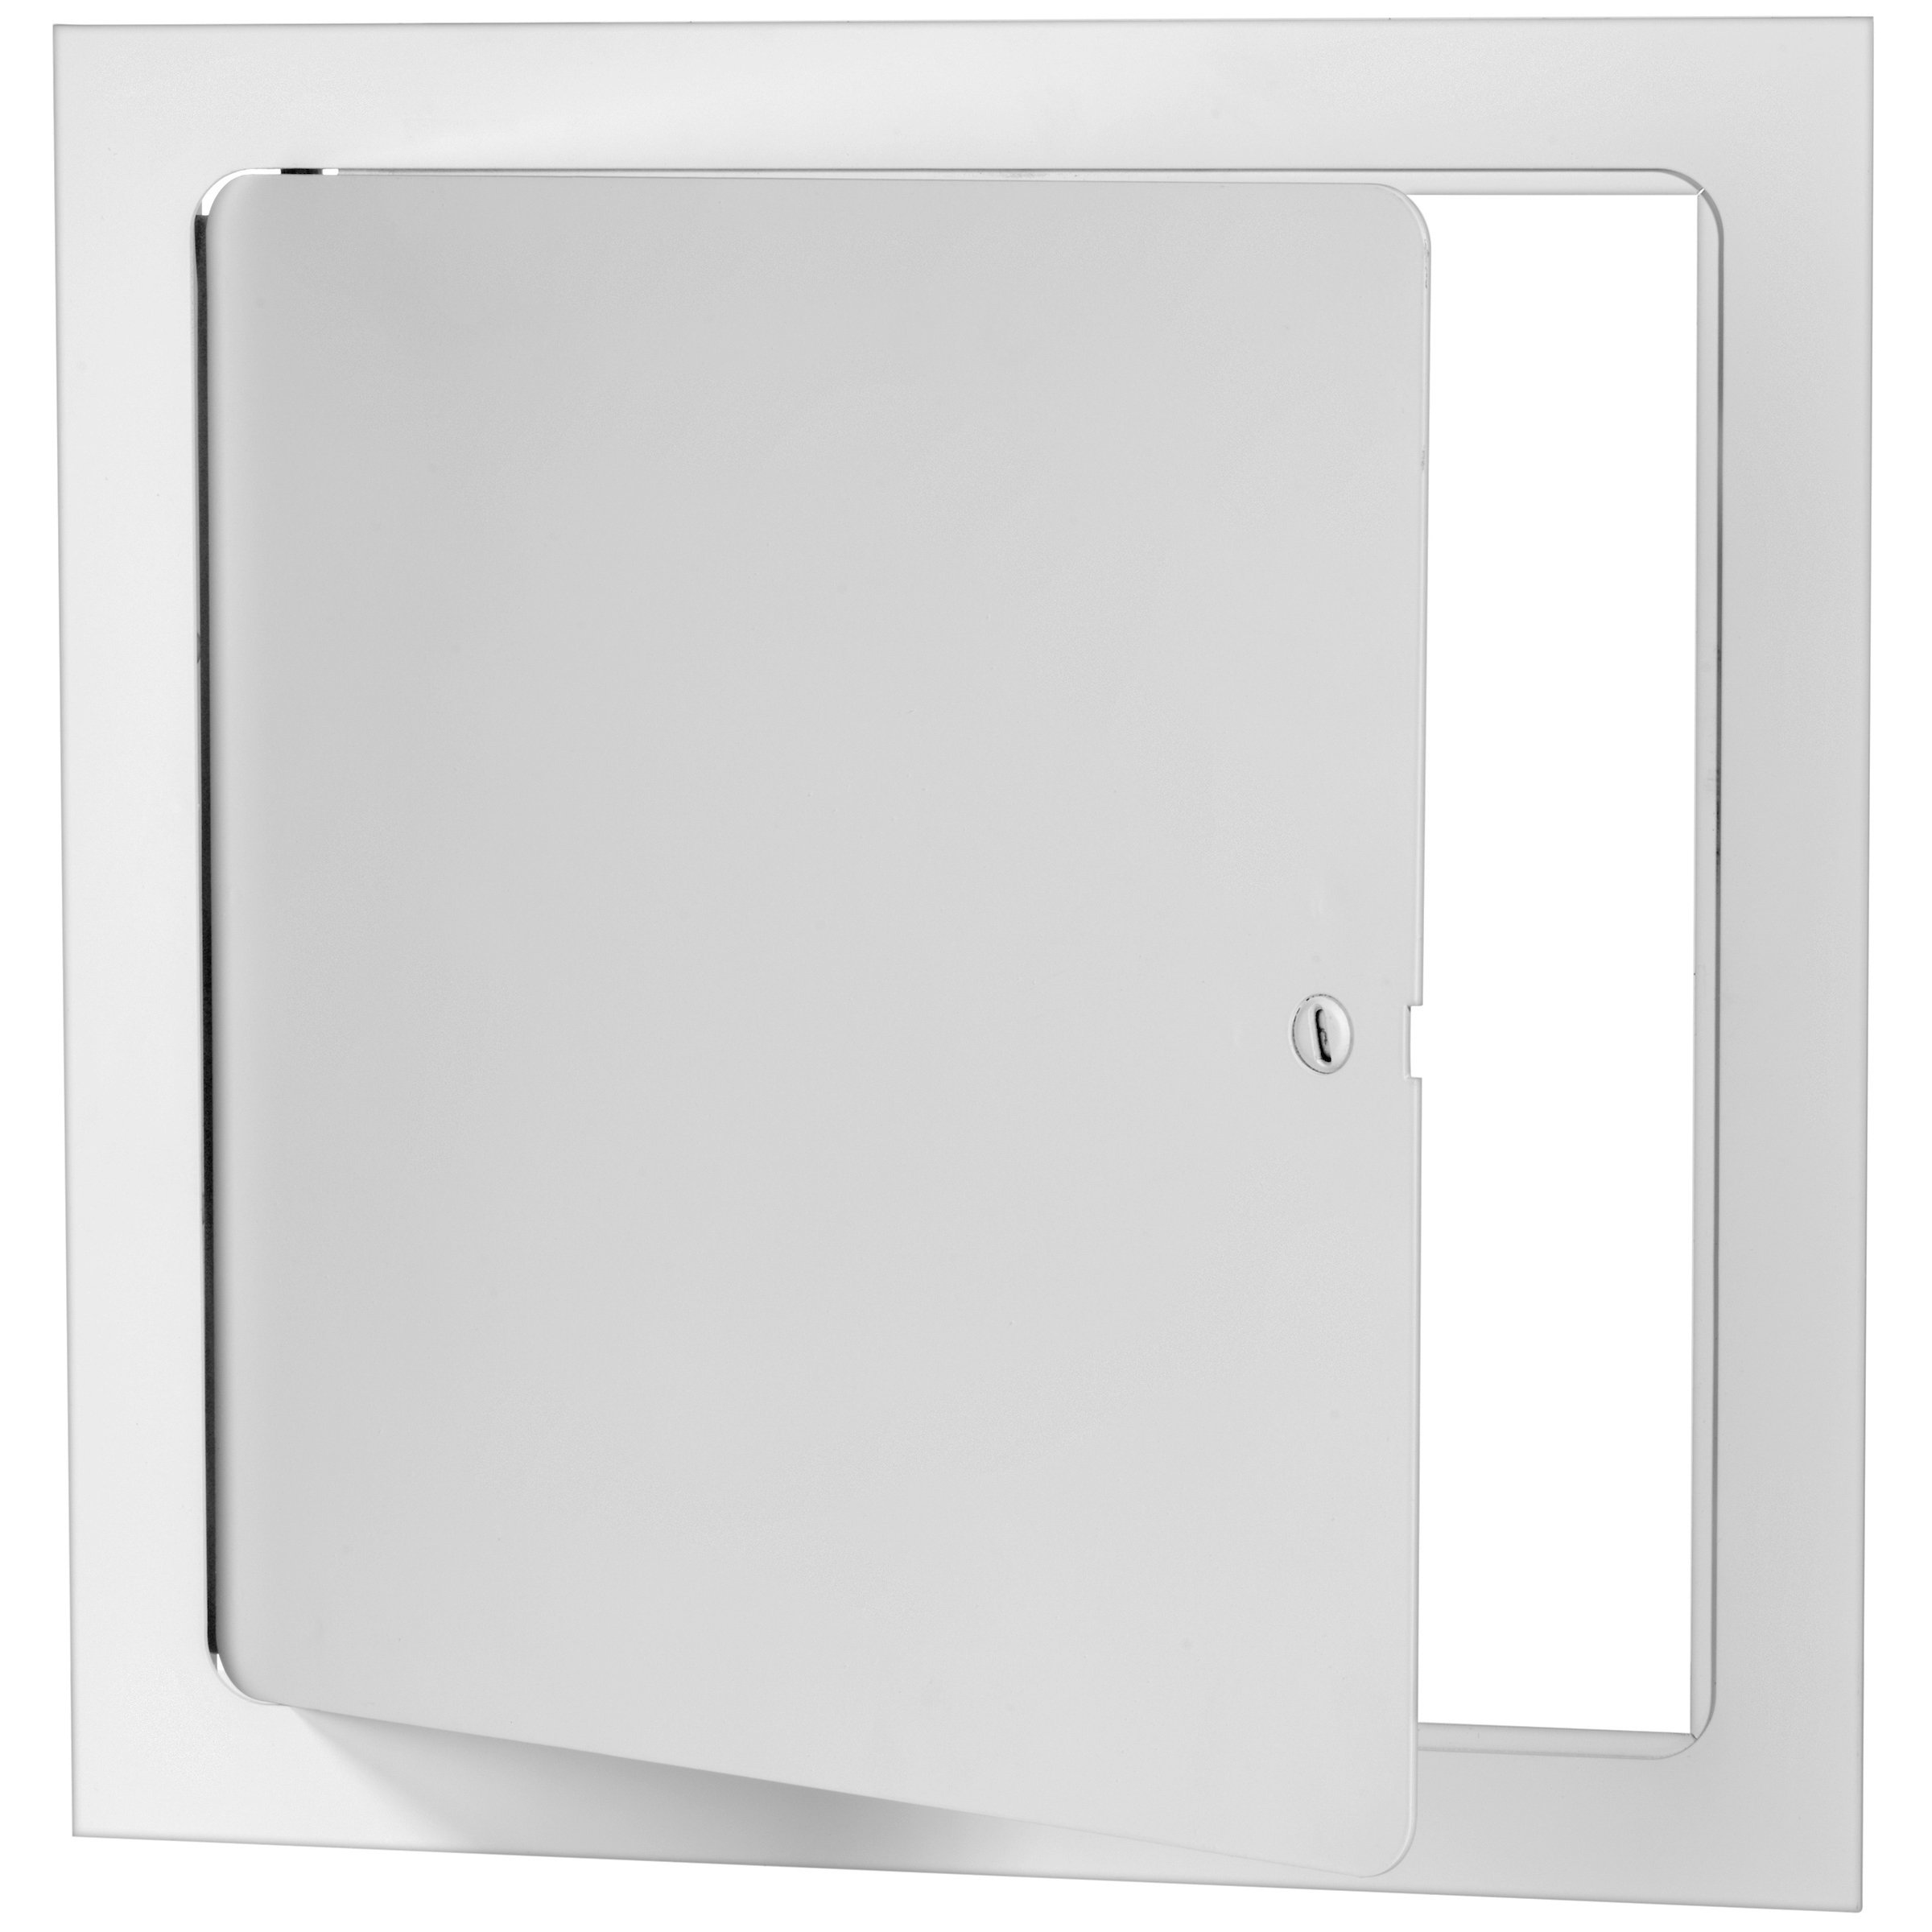 Premier 5000 Series Commercial Grade Steel Access Door, 18 x 18 Flush Universal Mount, White (Screwdriver Latch)